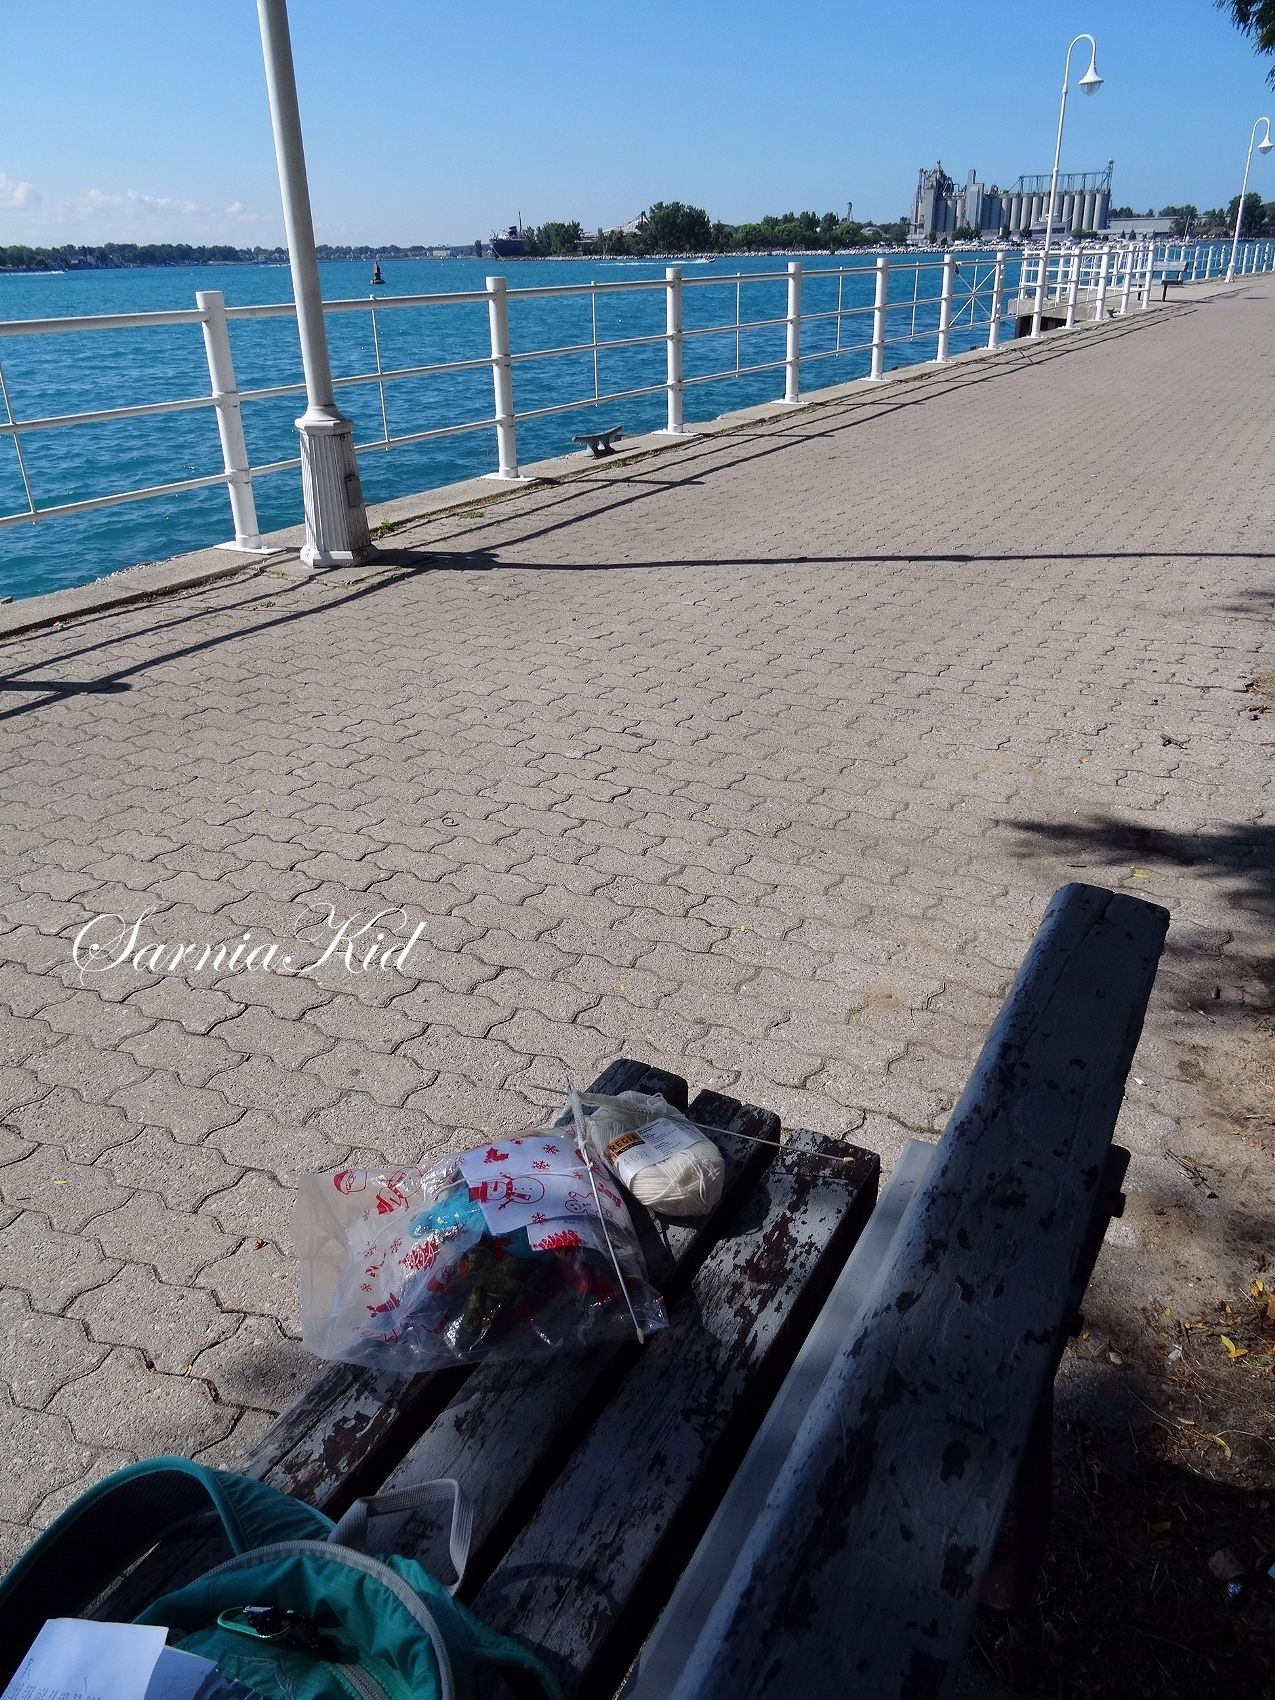 Knitting by the St. Clair River while waiting for my ride home!